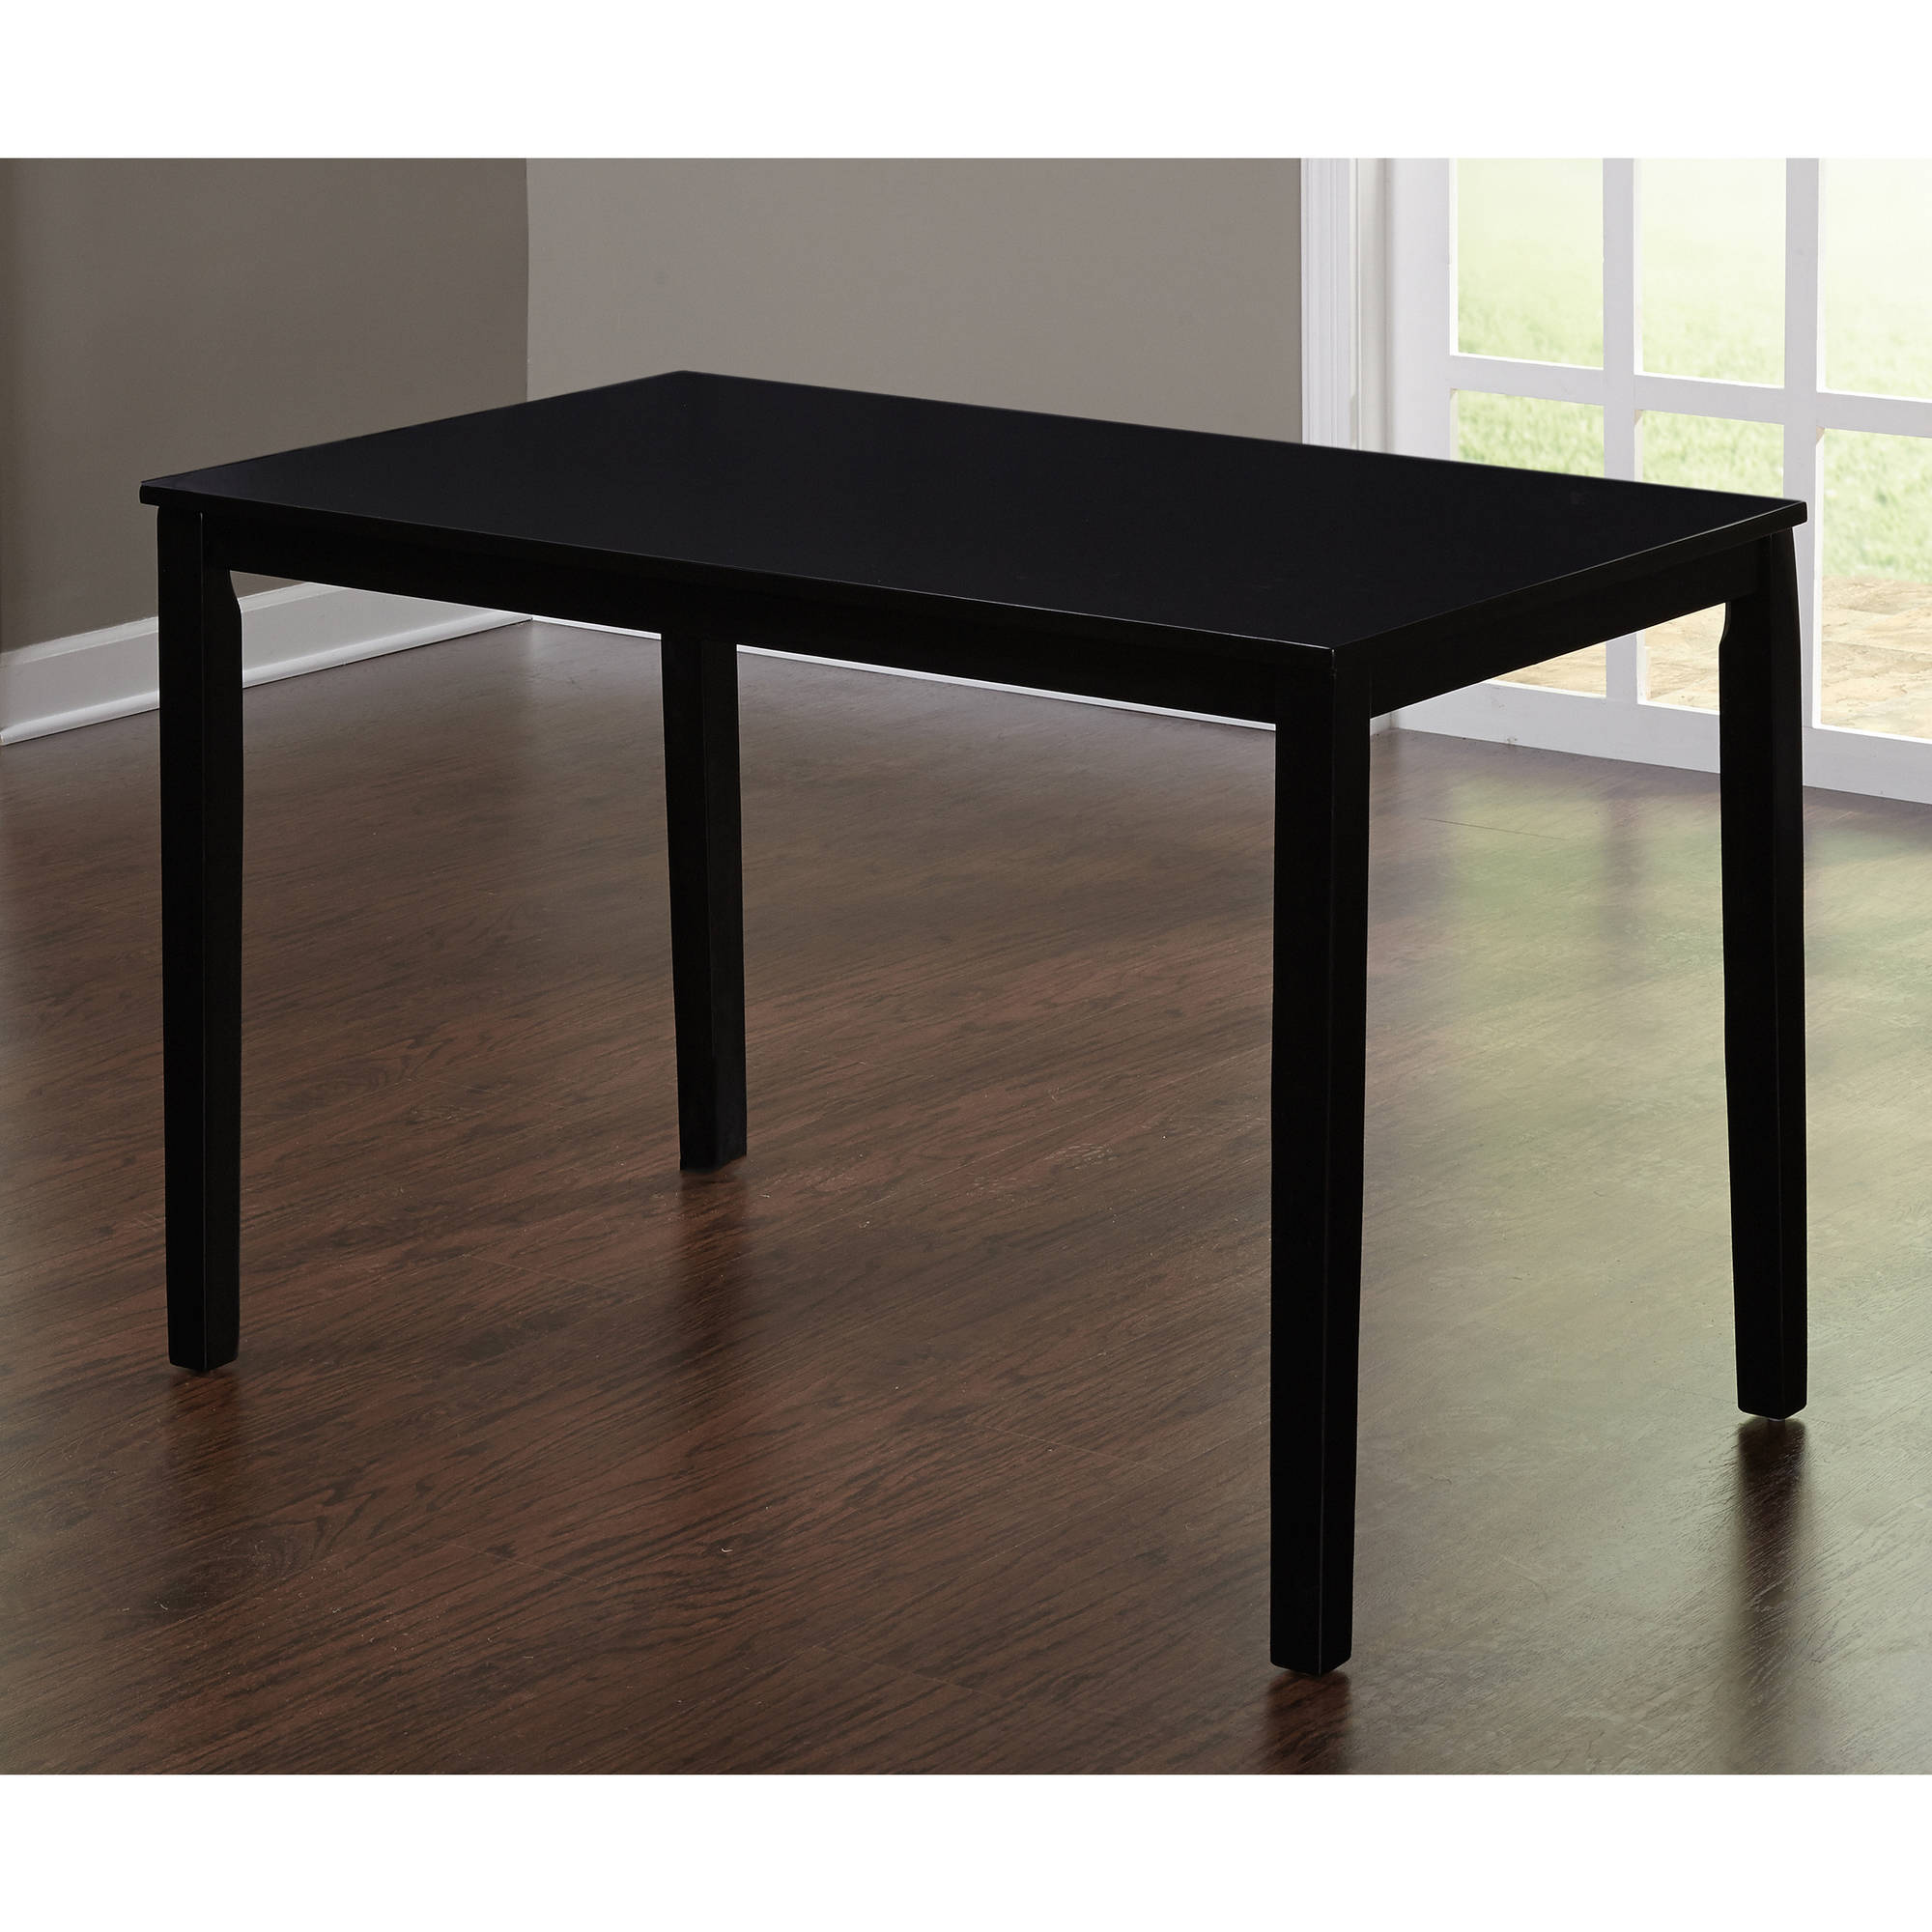 black dining table contemporary dining table, black - walmart.com LFSAROG